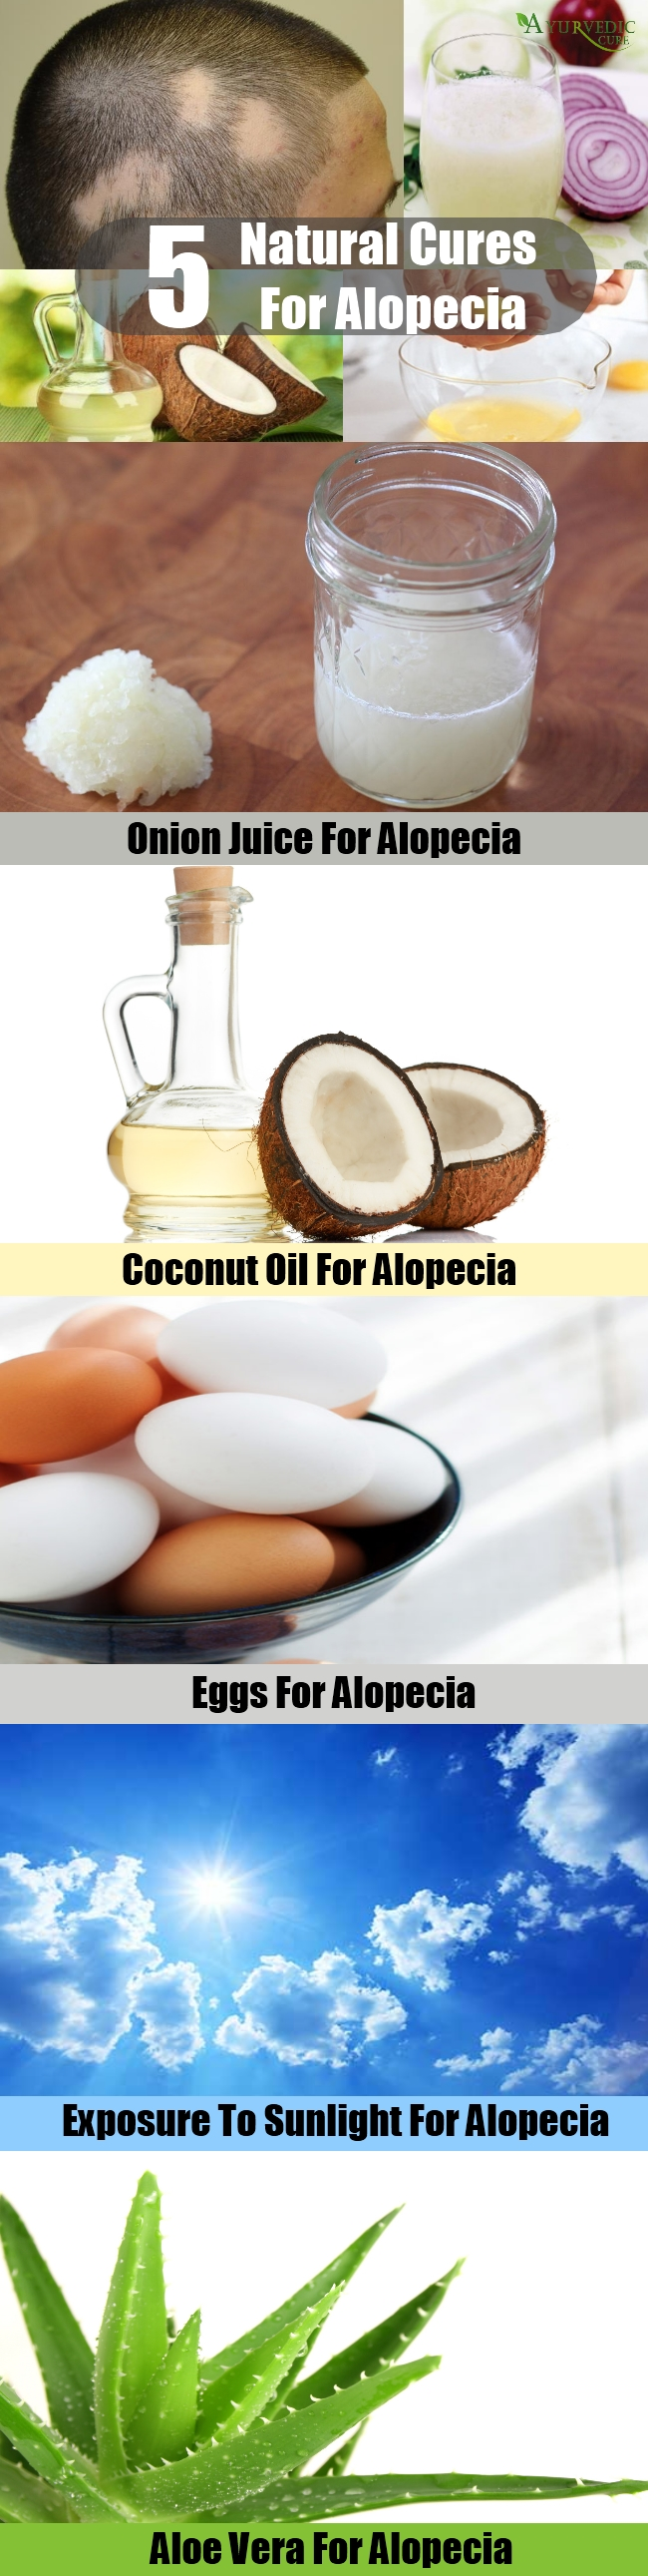 Top 5 Natural Cures For Alopecia